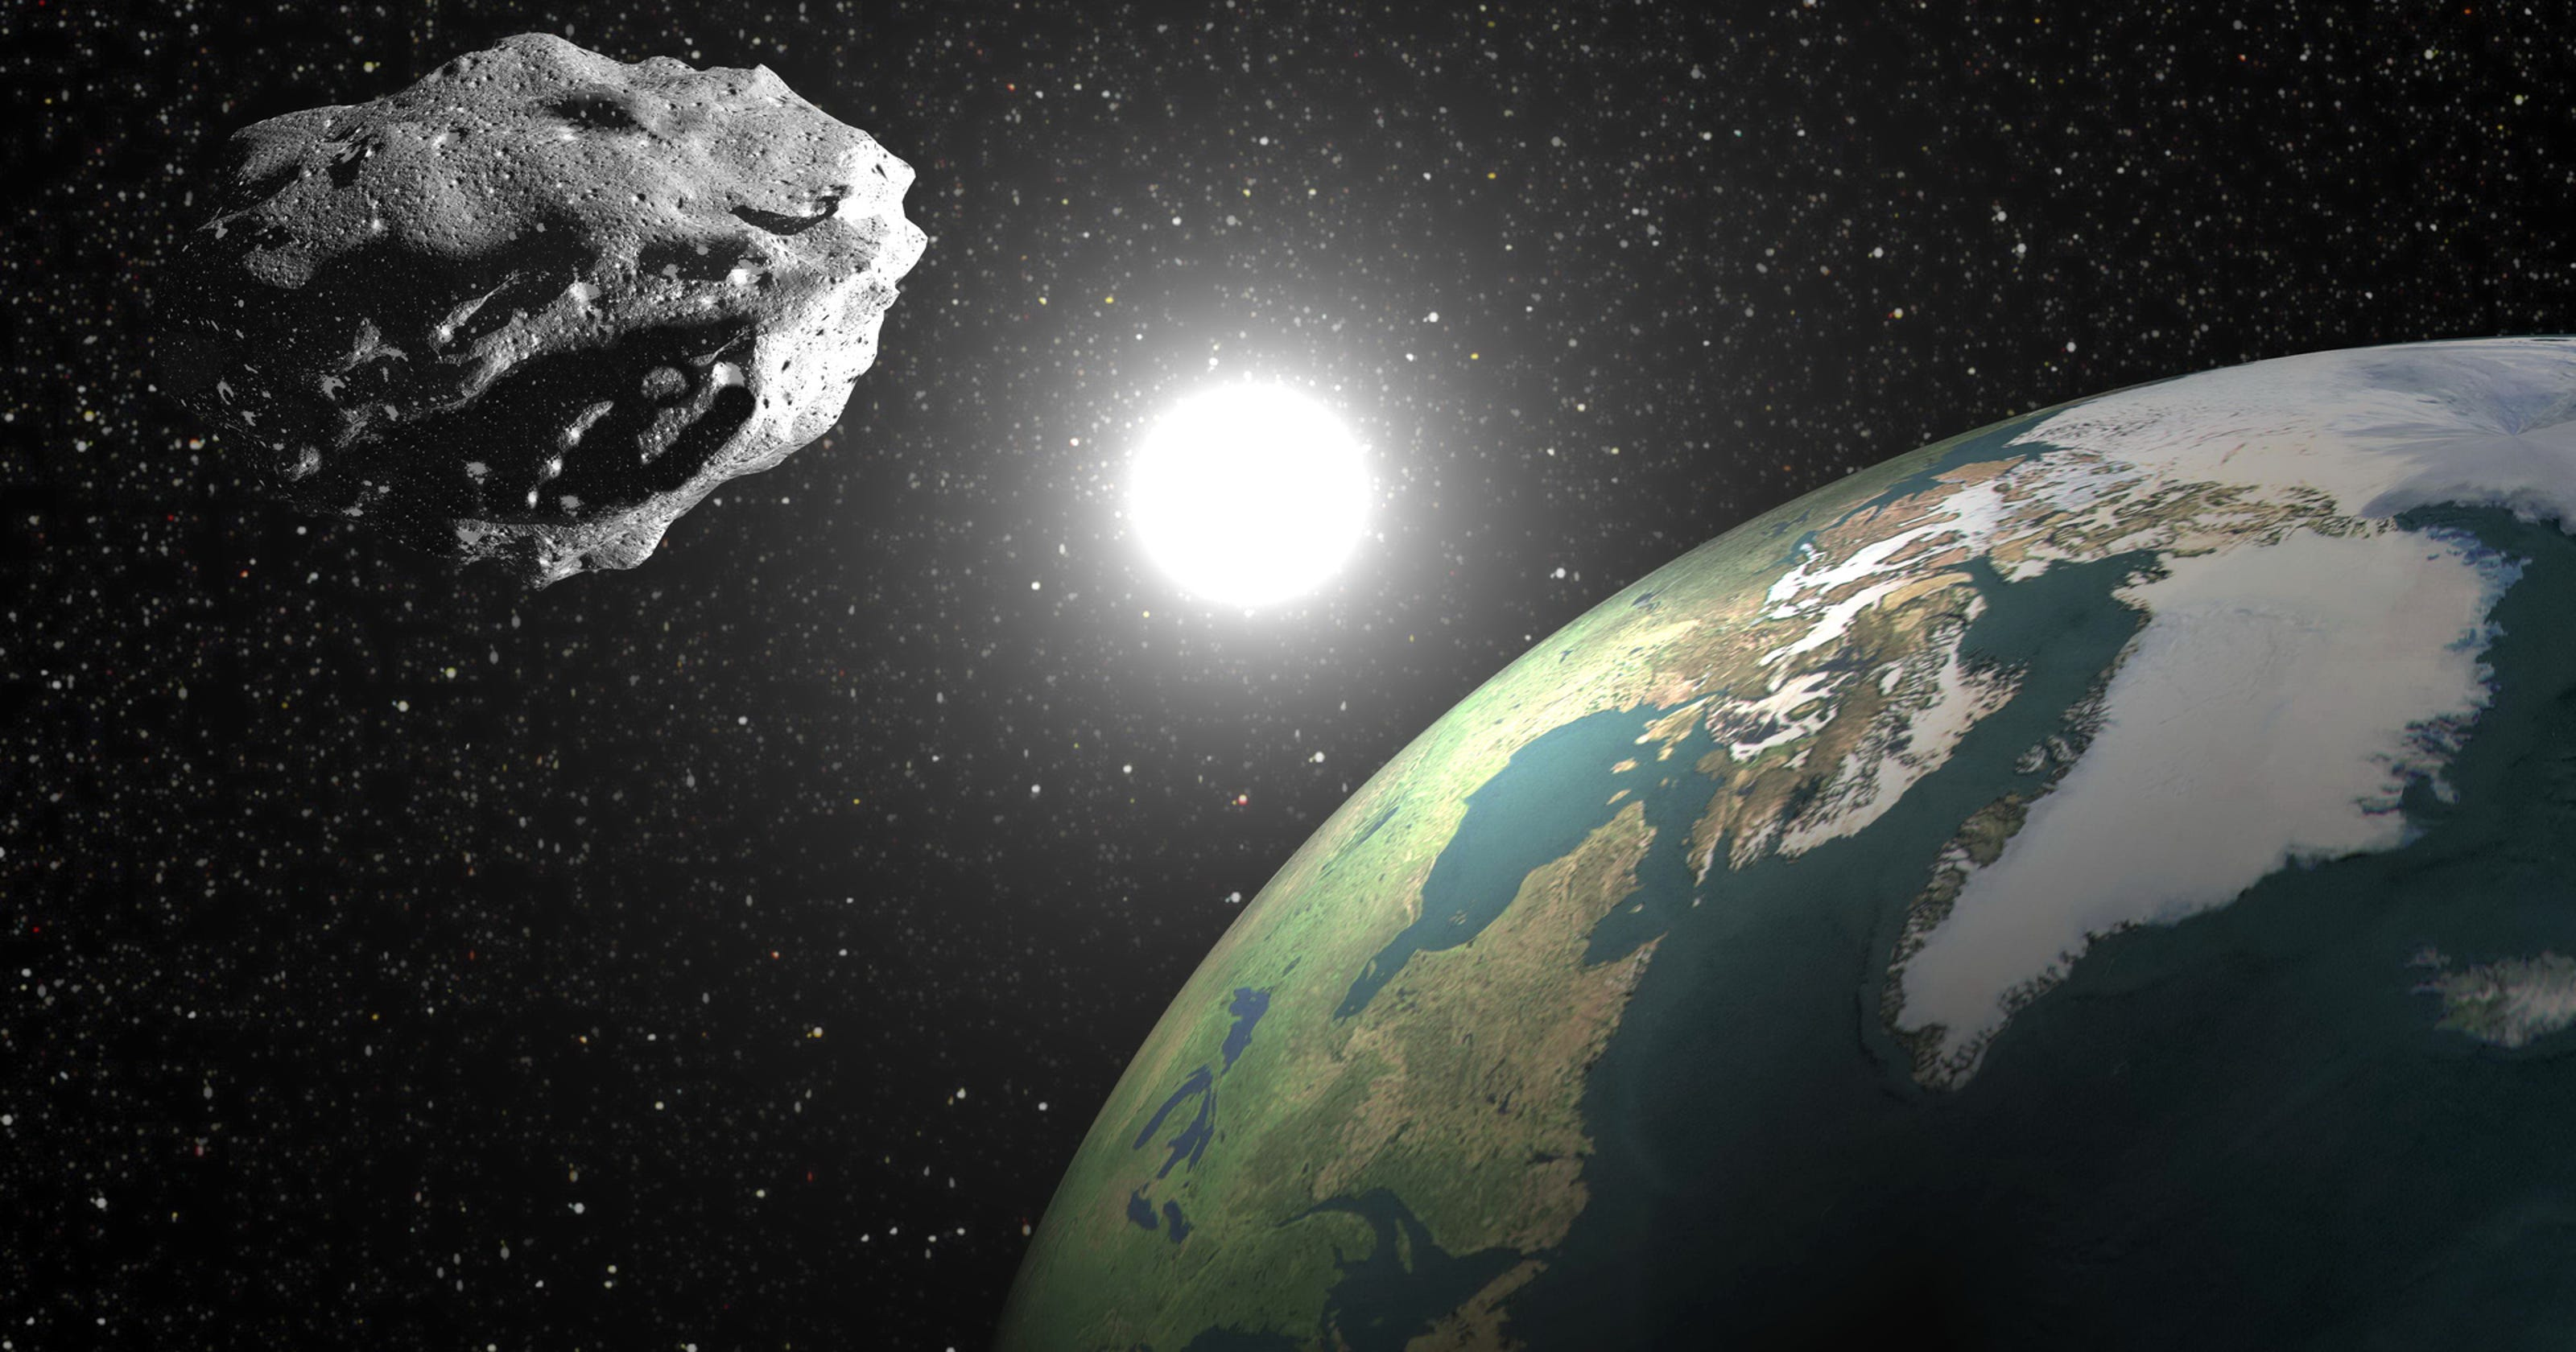 Asteroid 2006 QV89 has small chance impacting Earth in September